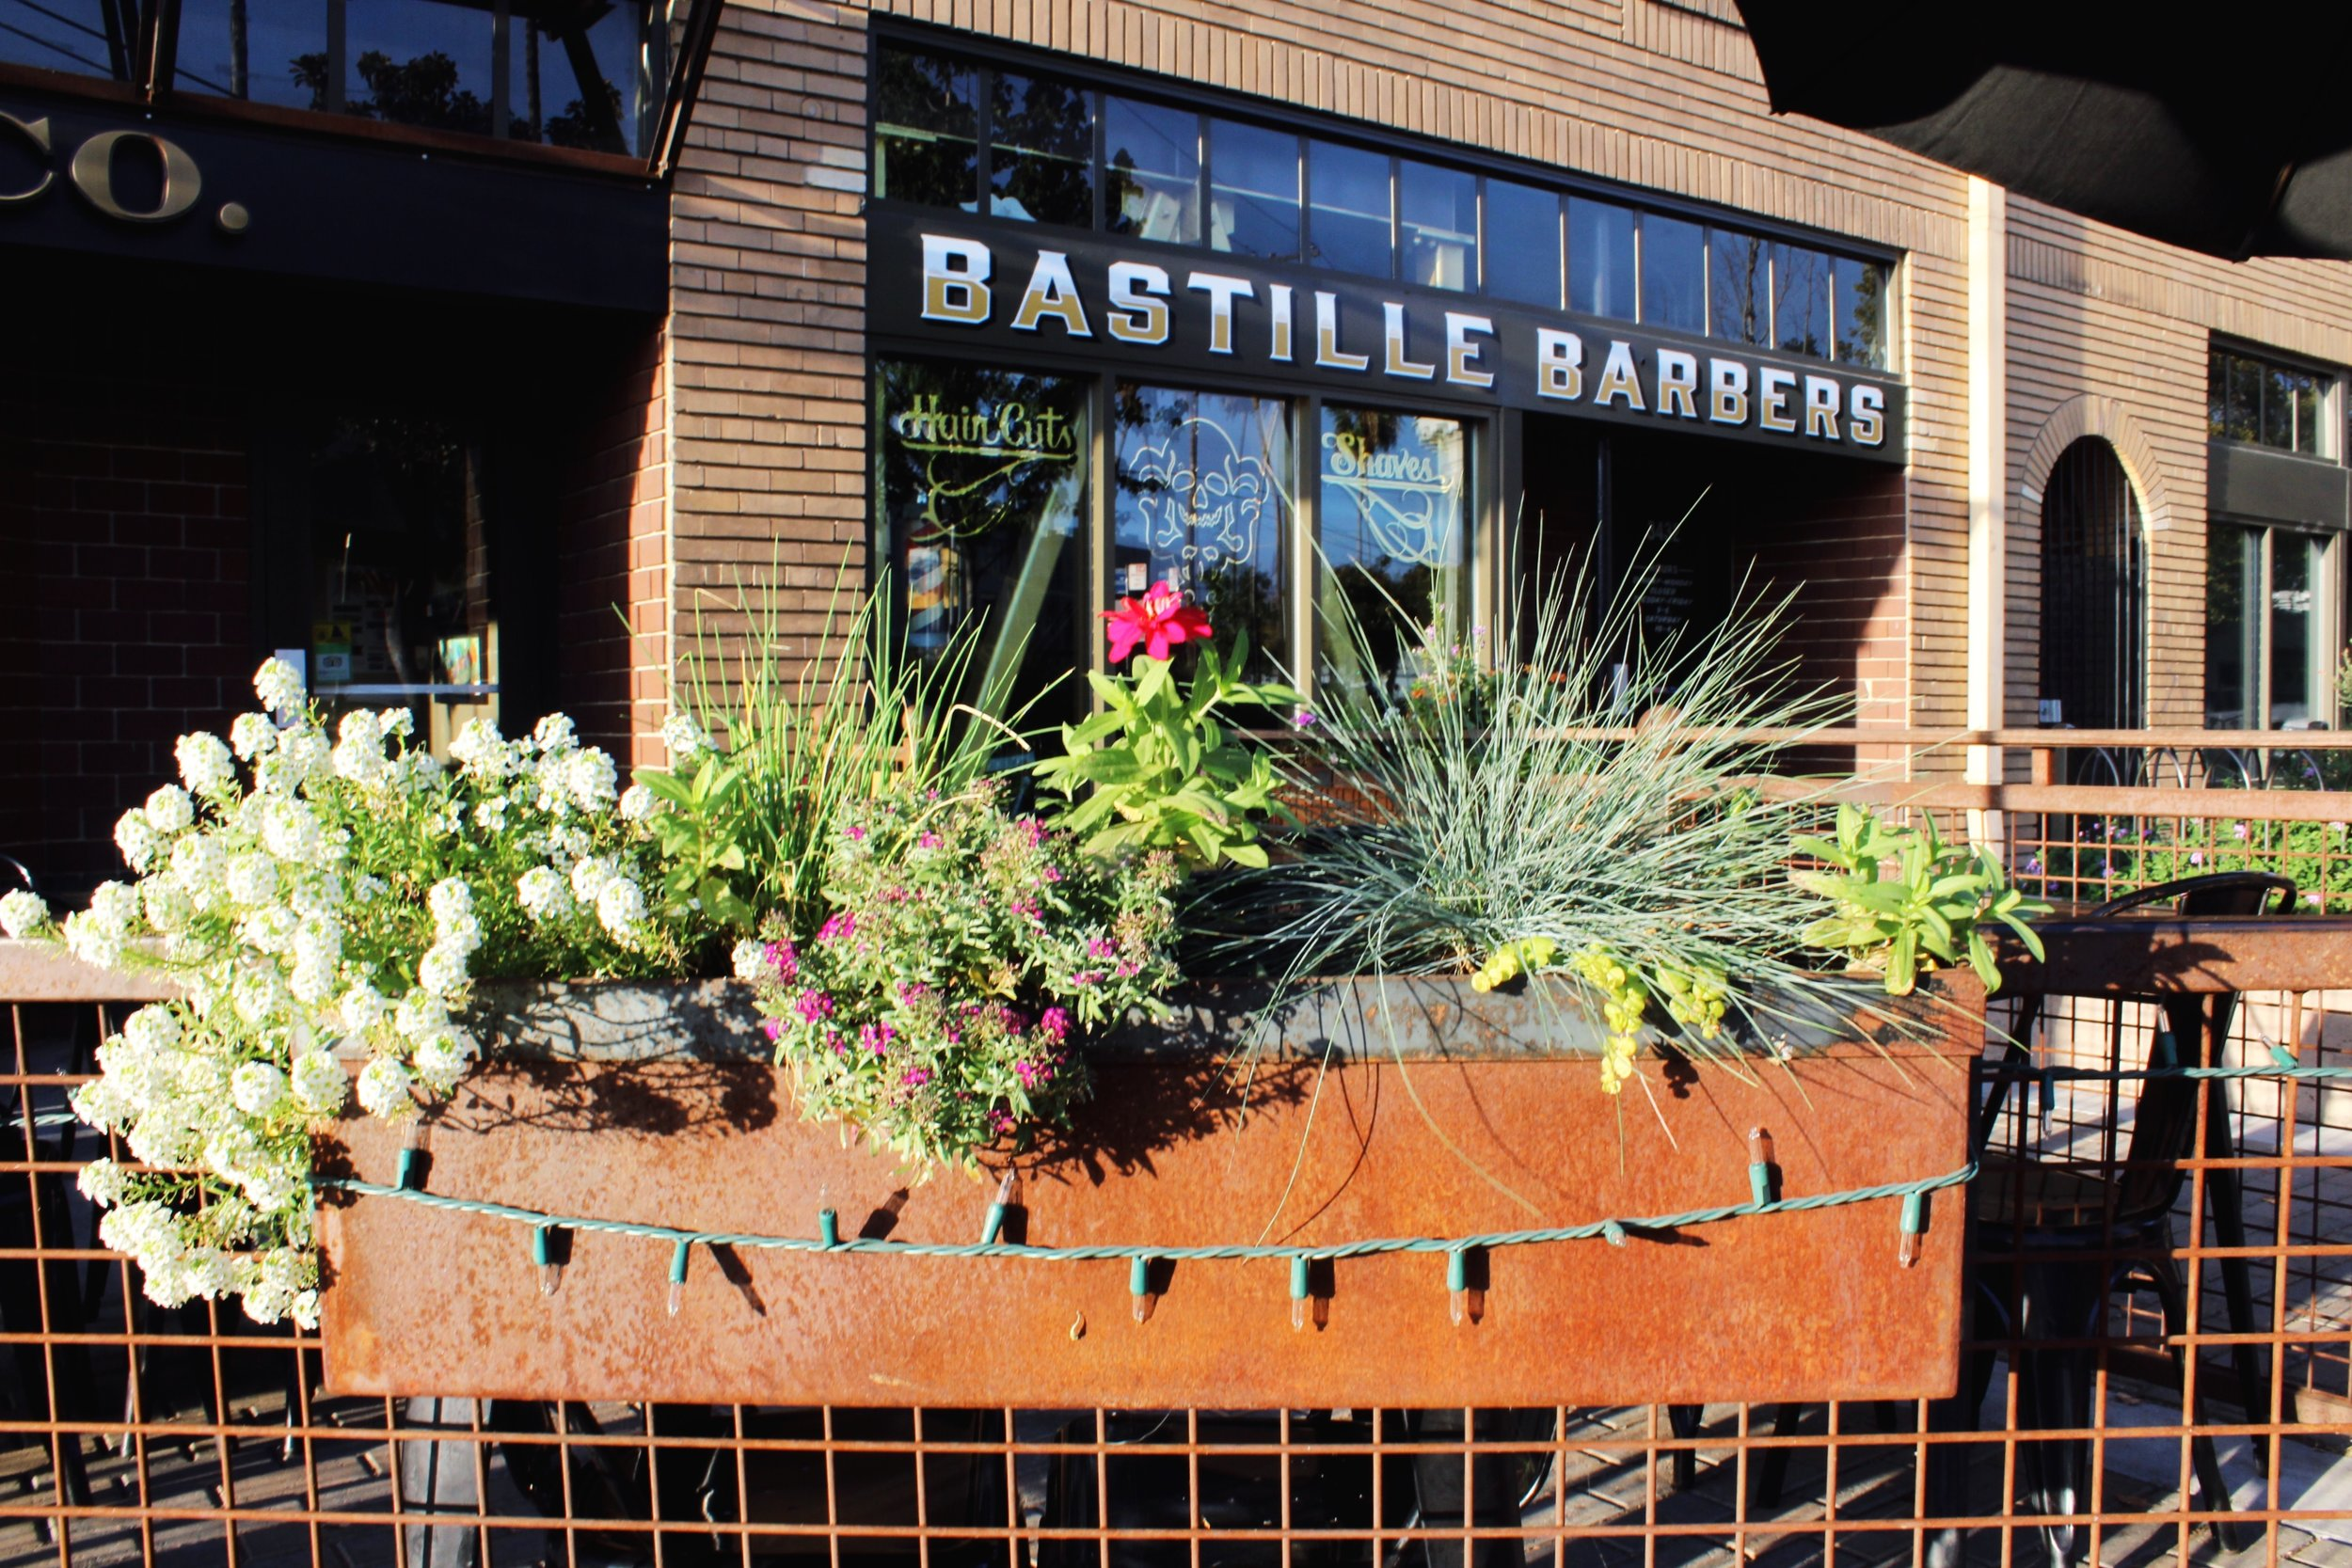 Bastille Barbers in Oak Park Sacramento California